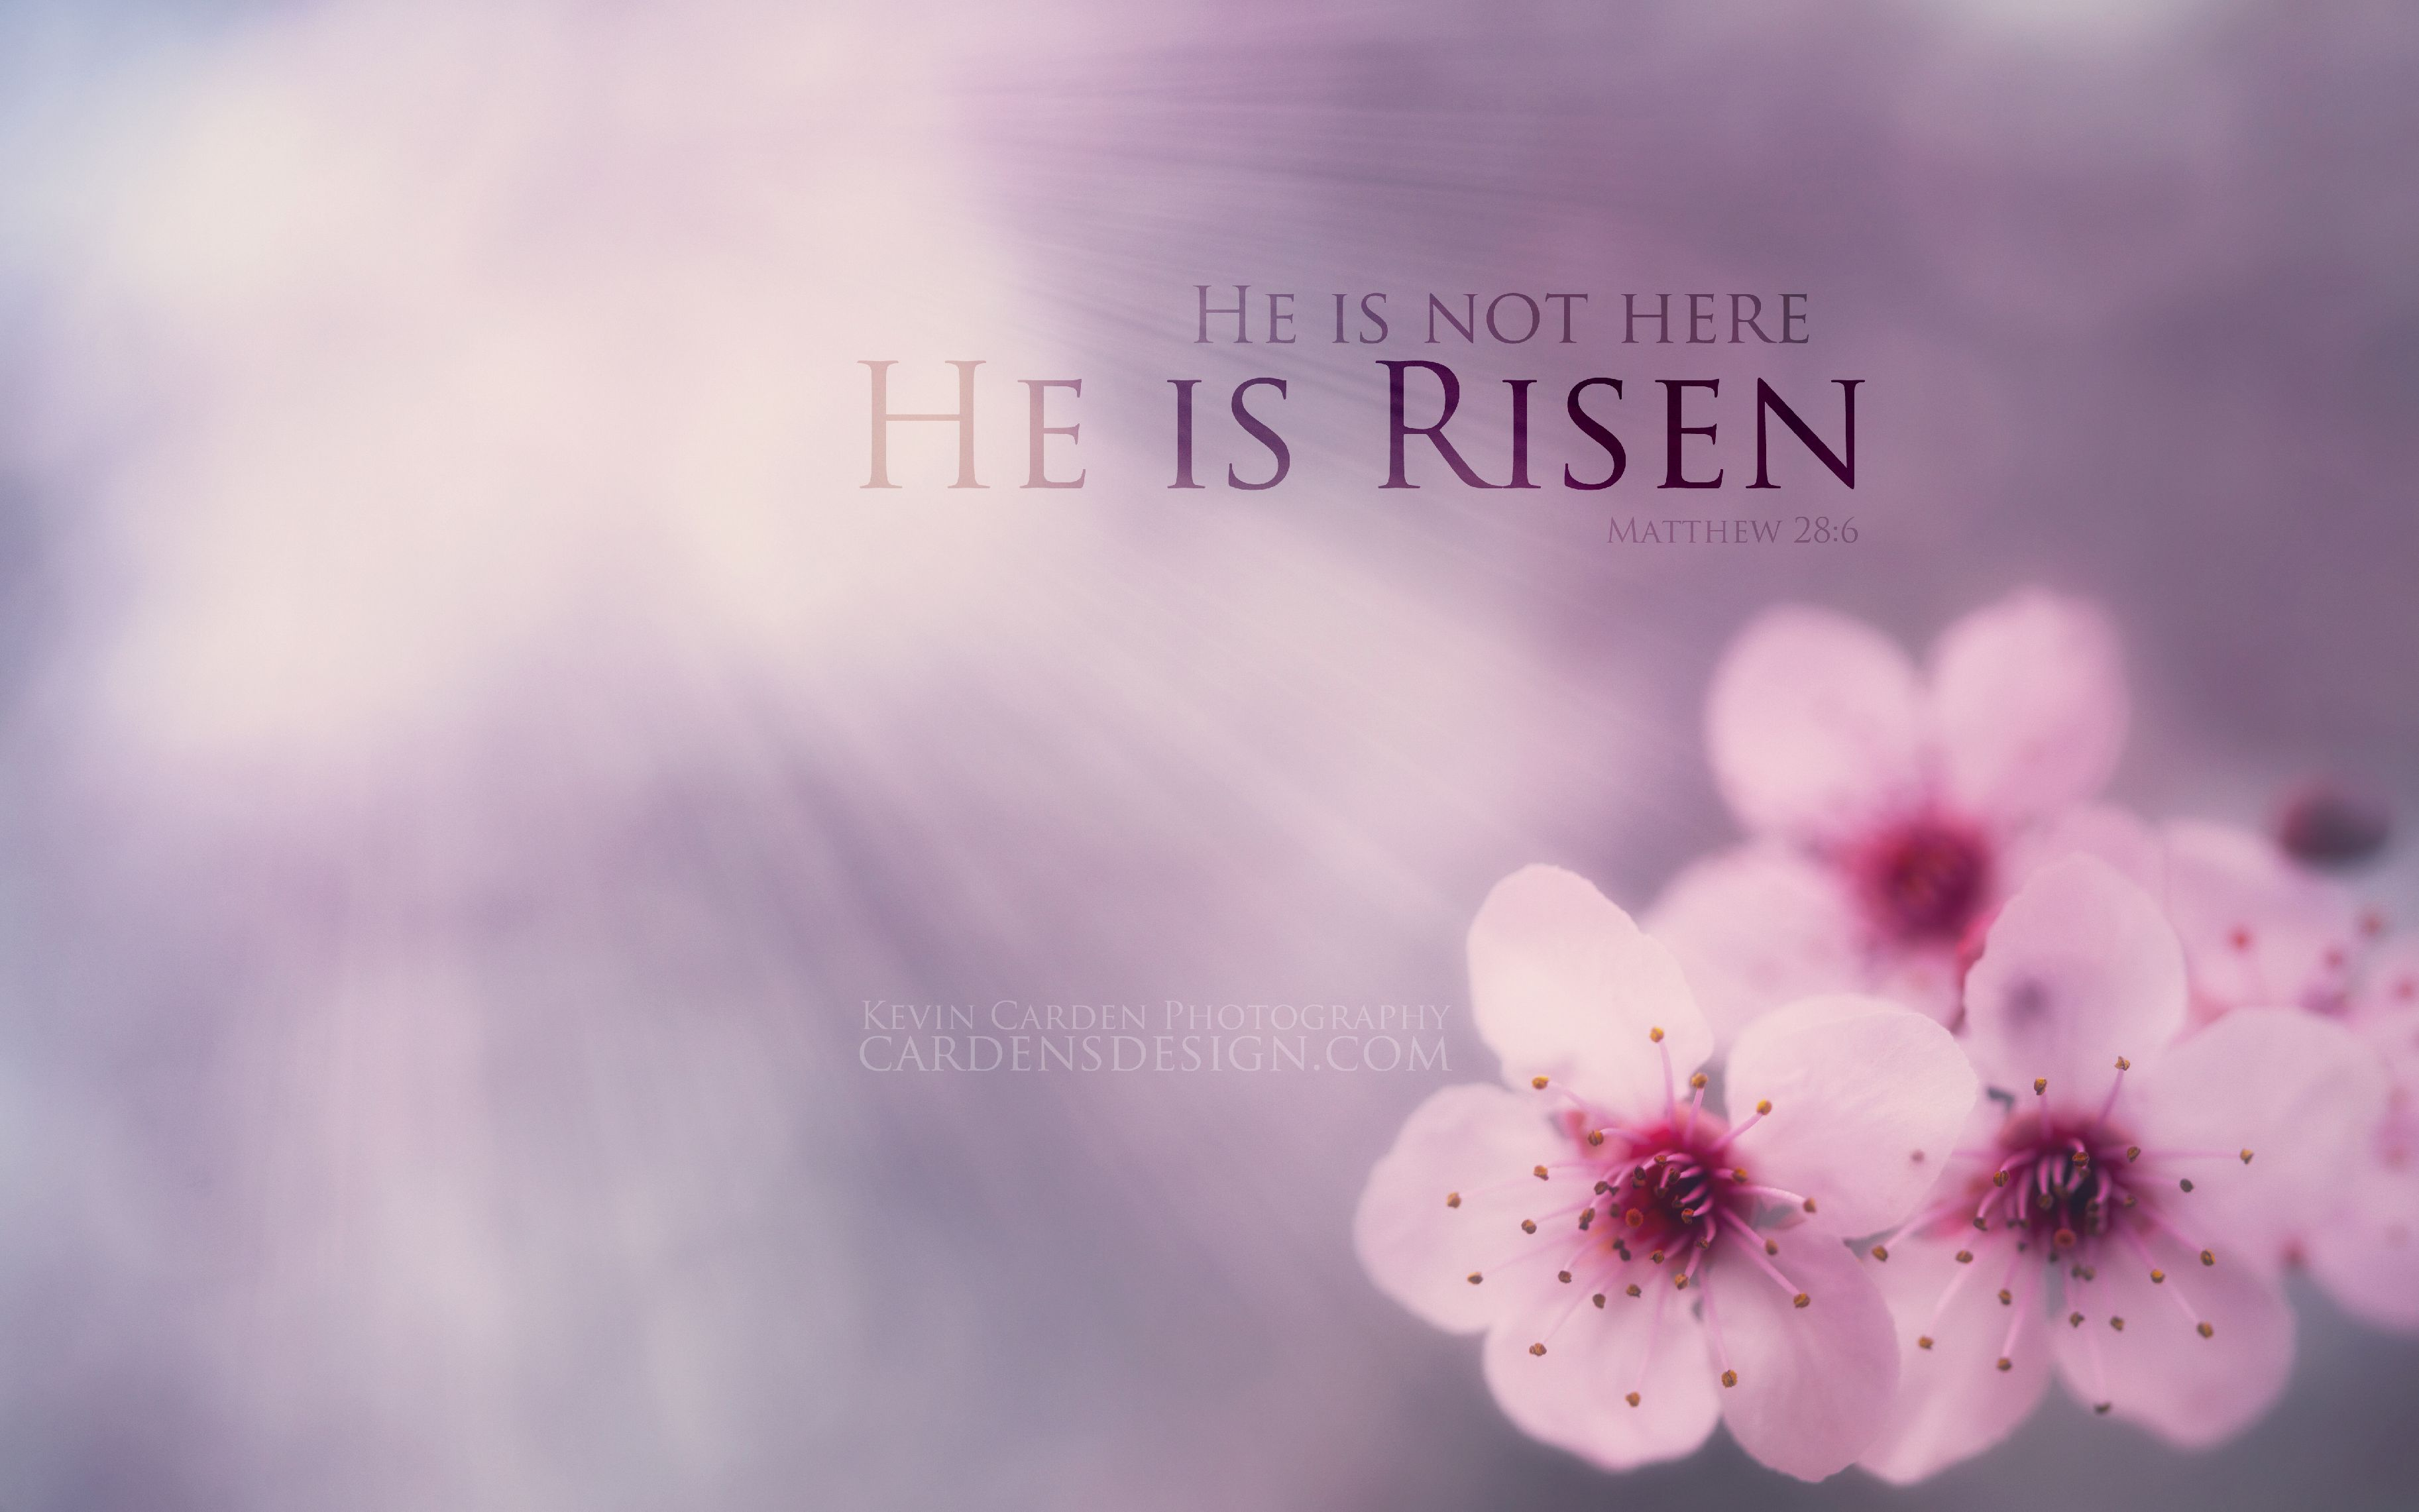 He is risen beautiful wallpaper With Resolutions 36502282 Pixel 3650x2282